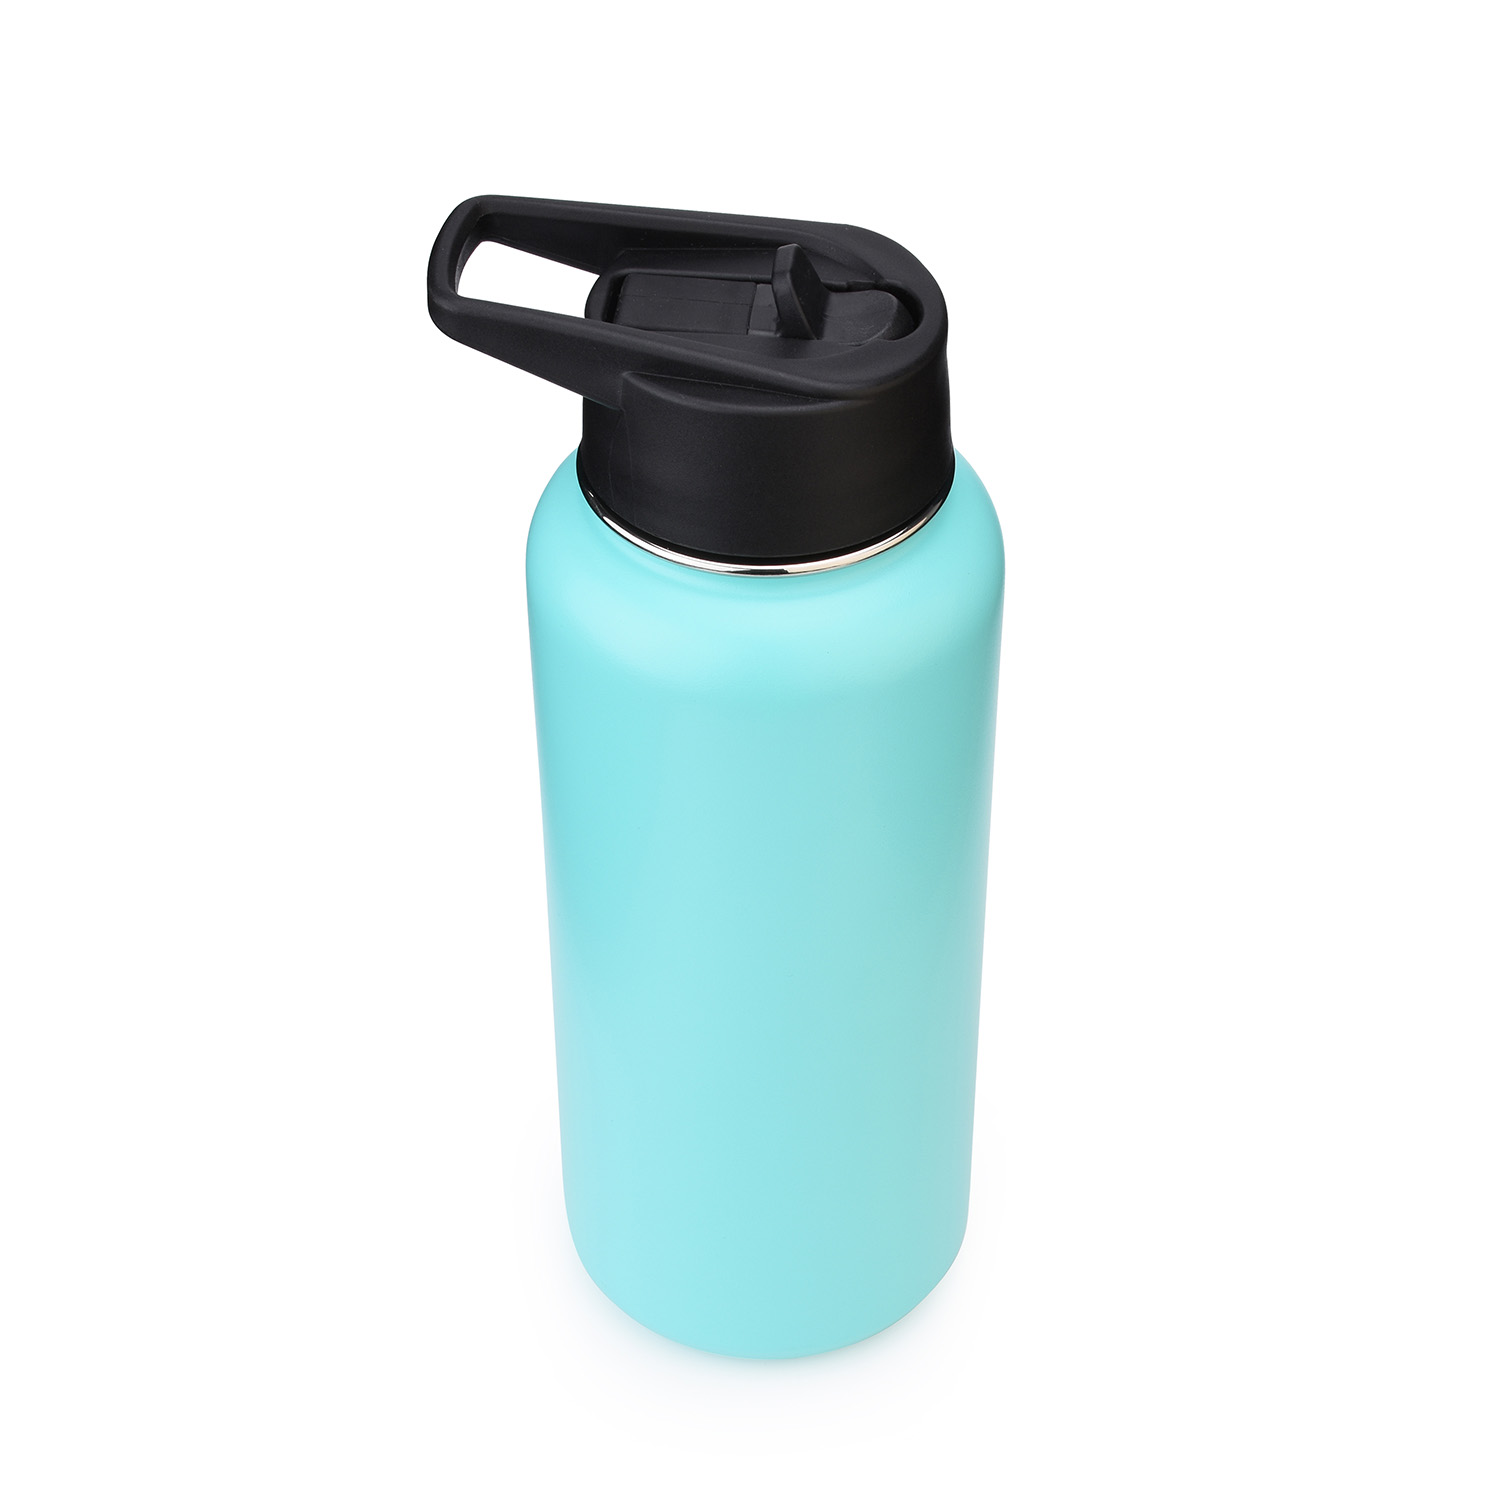 75c14a75c Double Wall Vacuum Insulated Stainless Steel Water Bottle 32 oz Wide ...